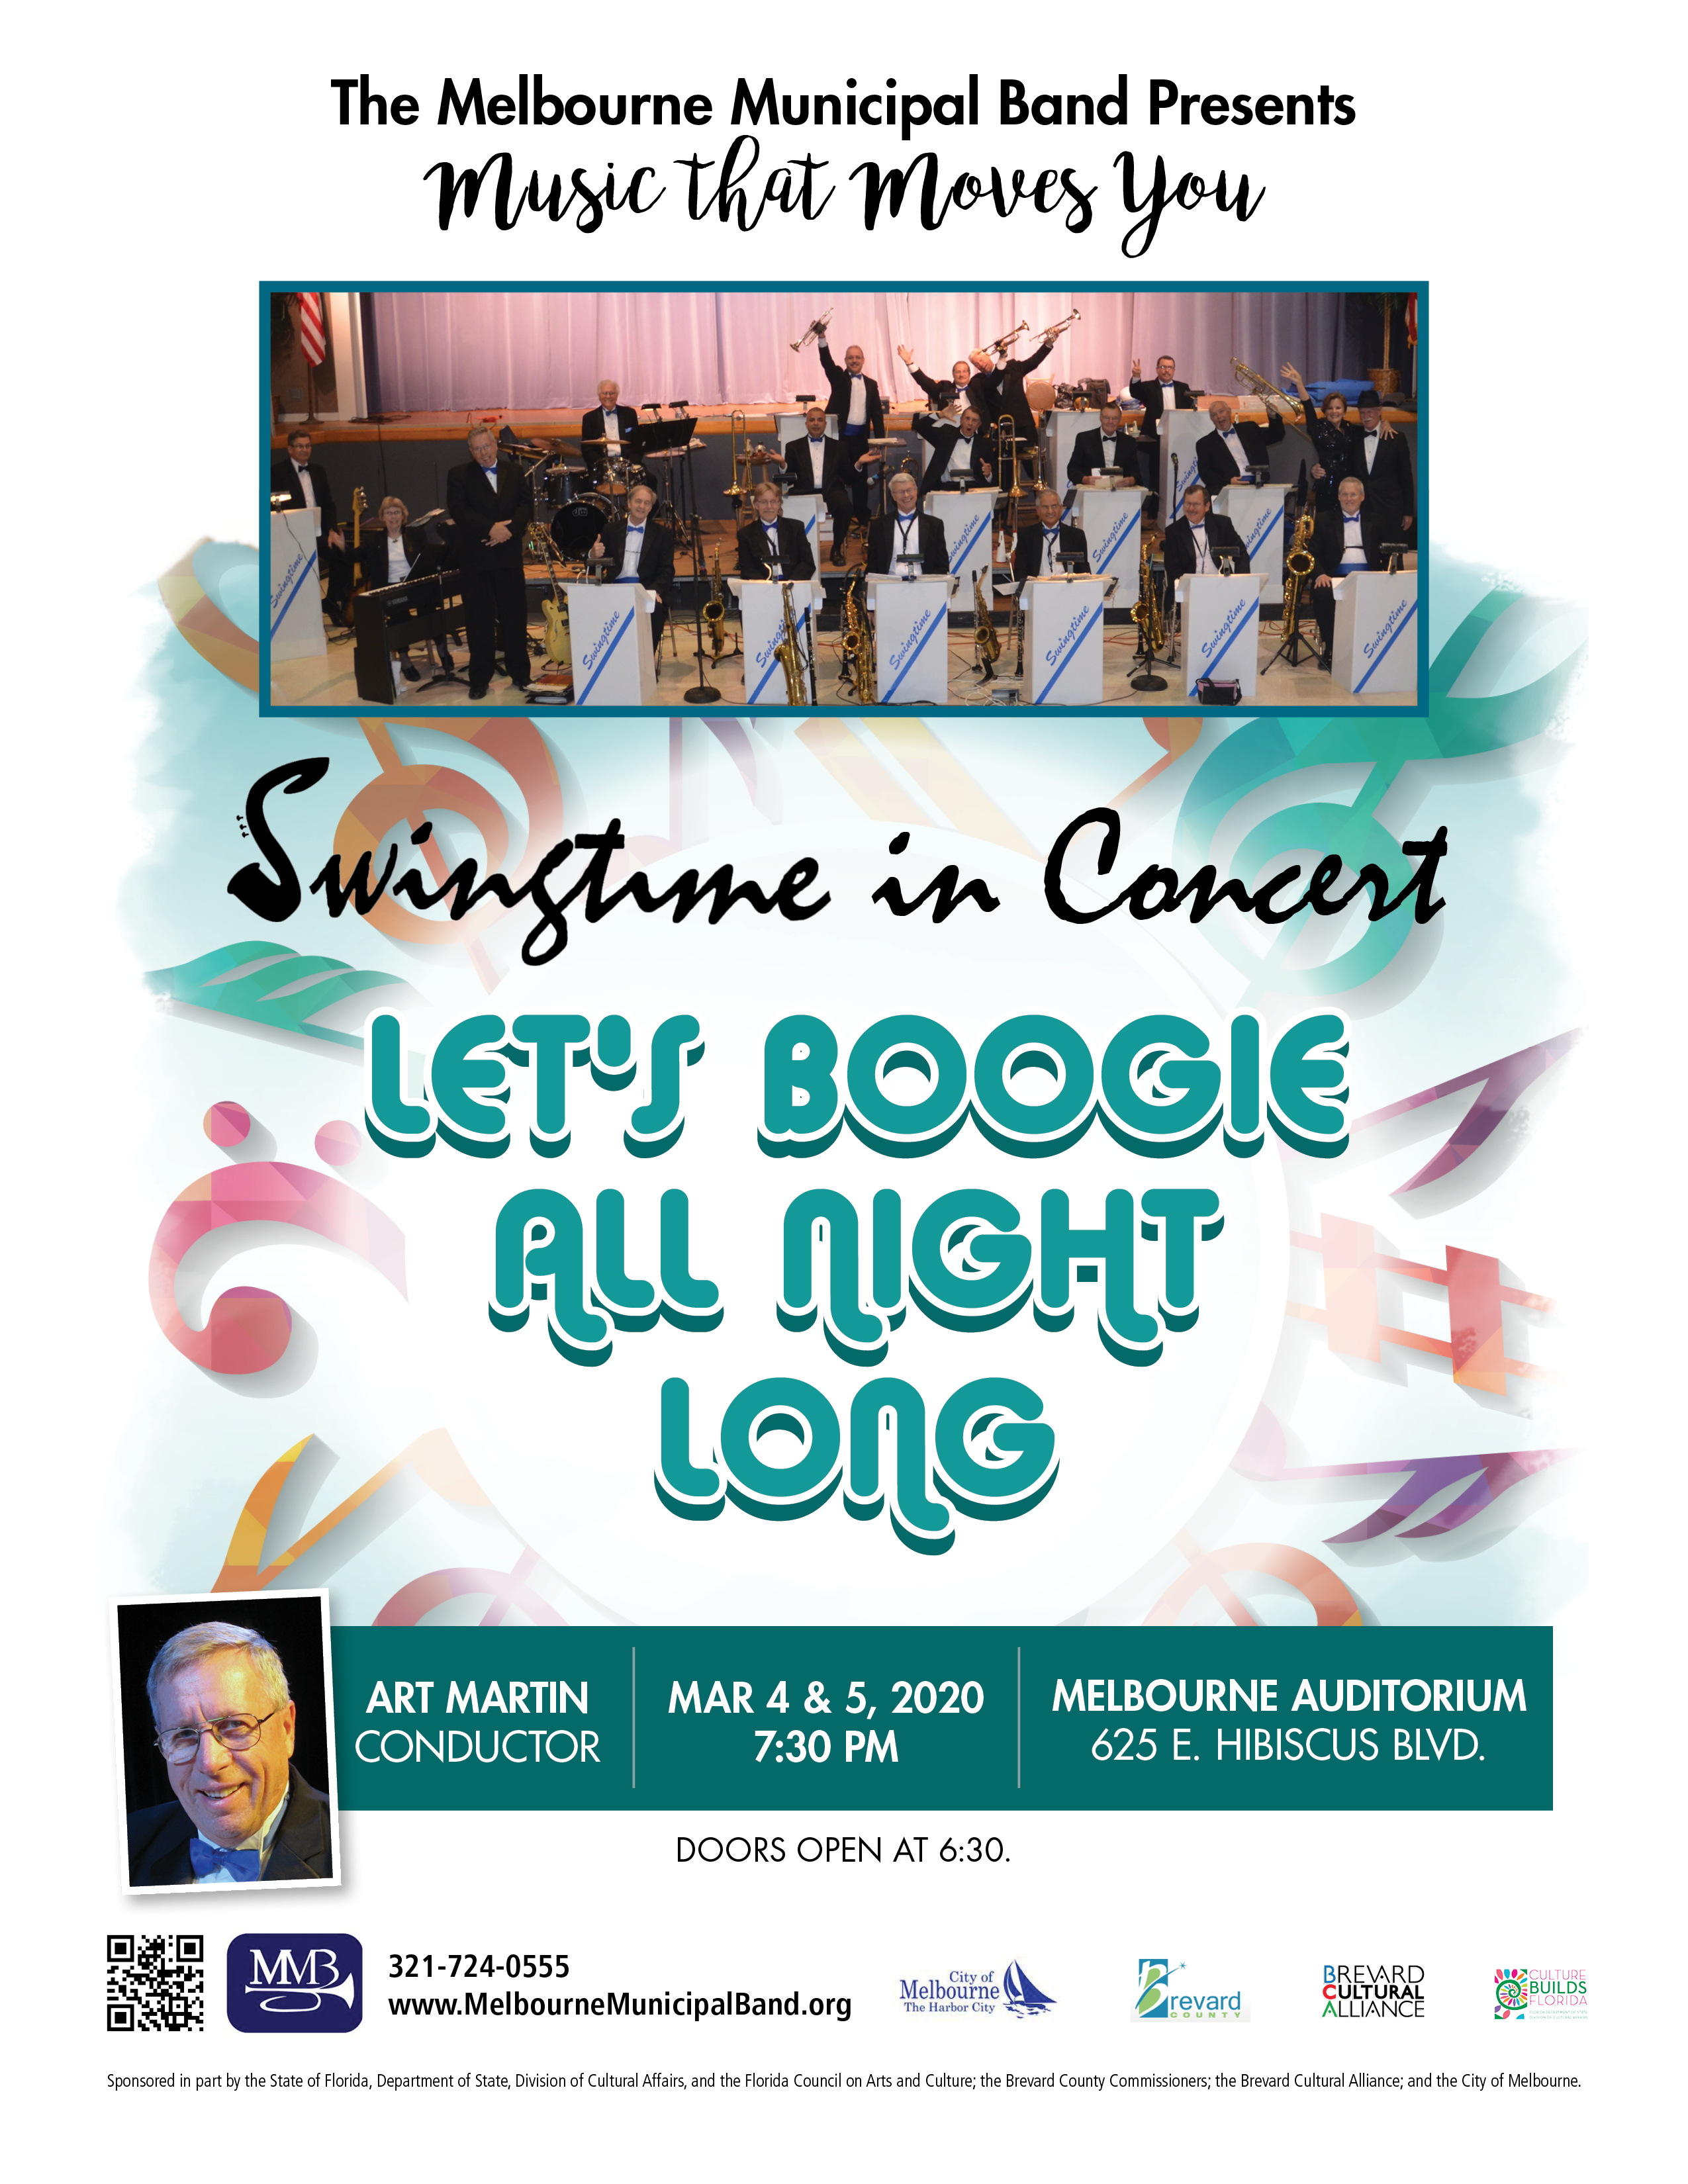 'Let's Boogie All Night Long' presented by The Melbourne Municipal Band